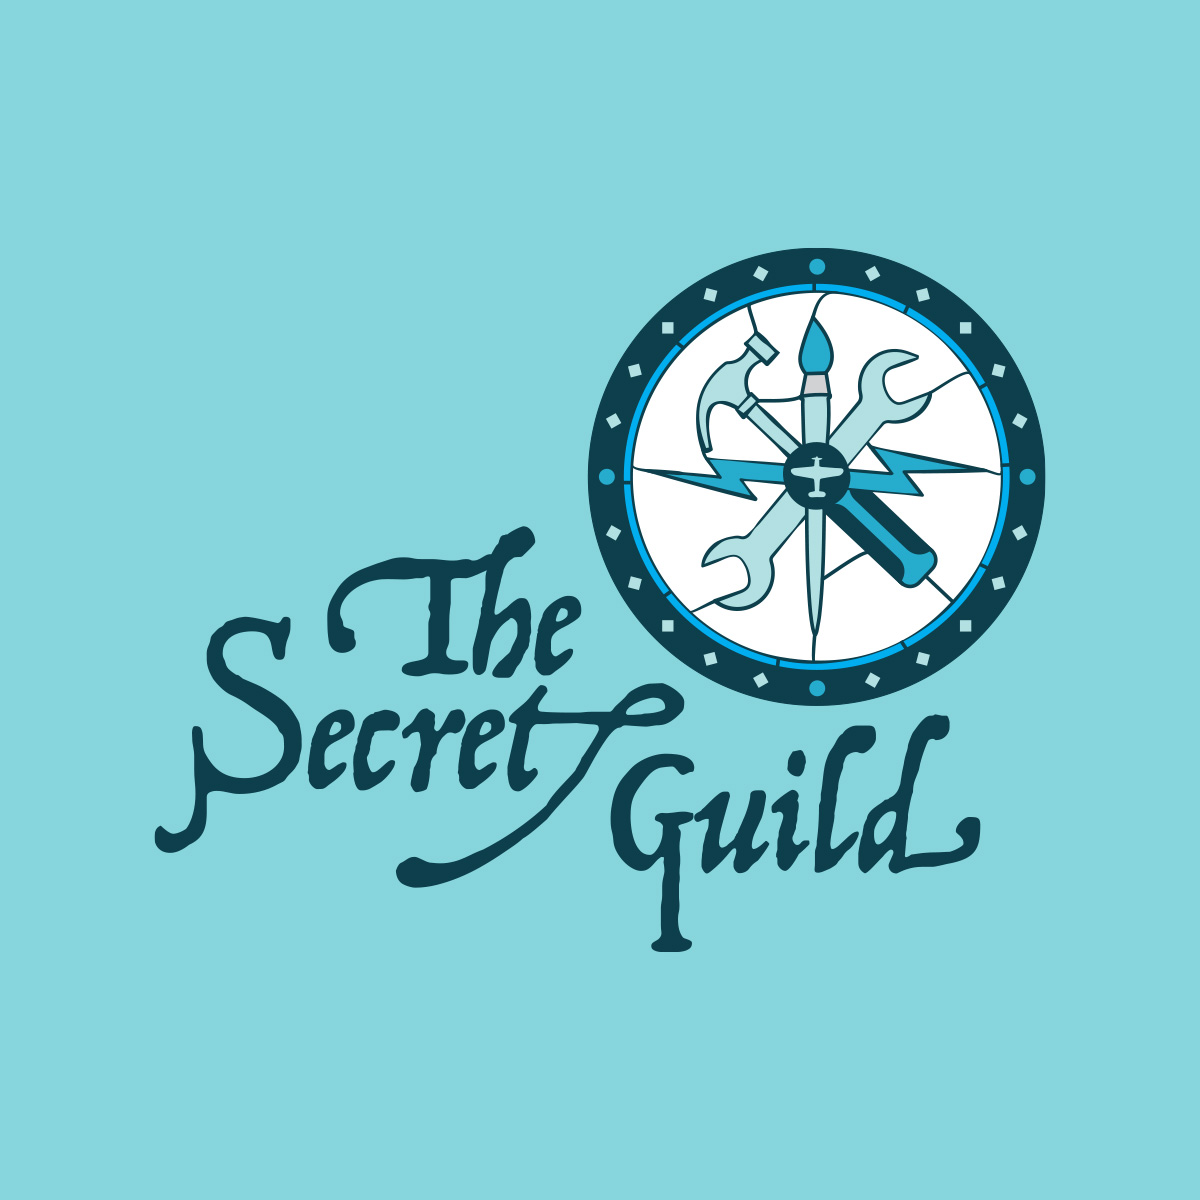 Image Description: Game logo for The Secret Guild - a sylized stained glass design featuring a paint brush a lightning bolt and a wrench